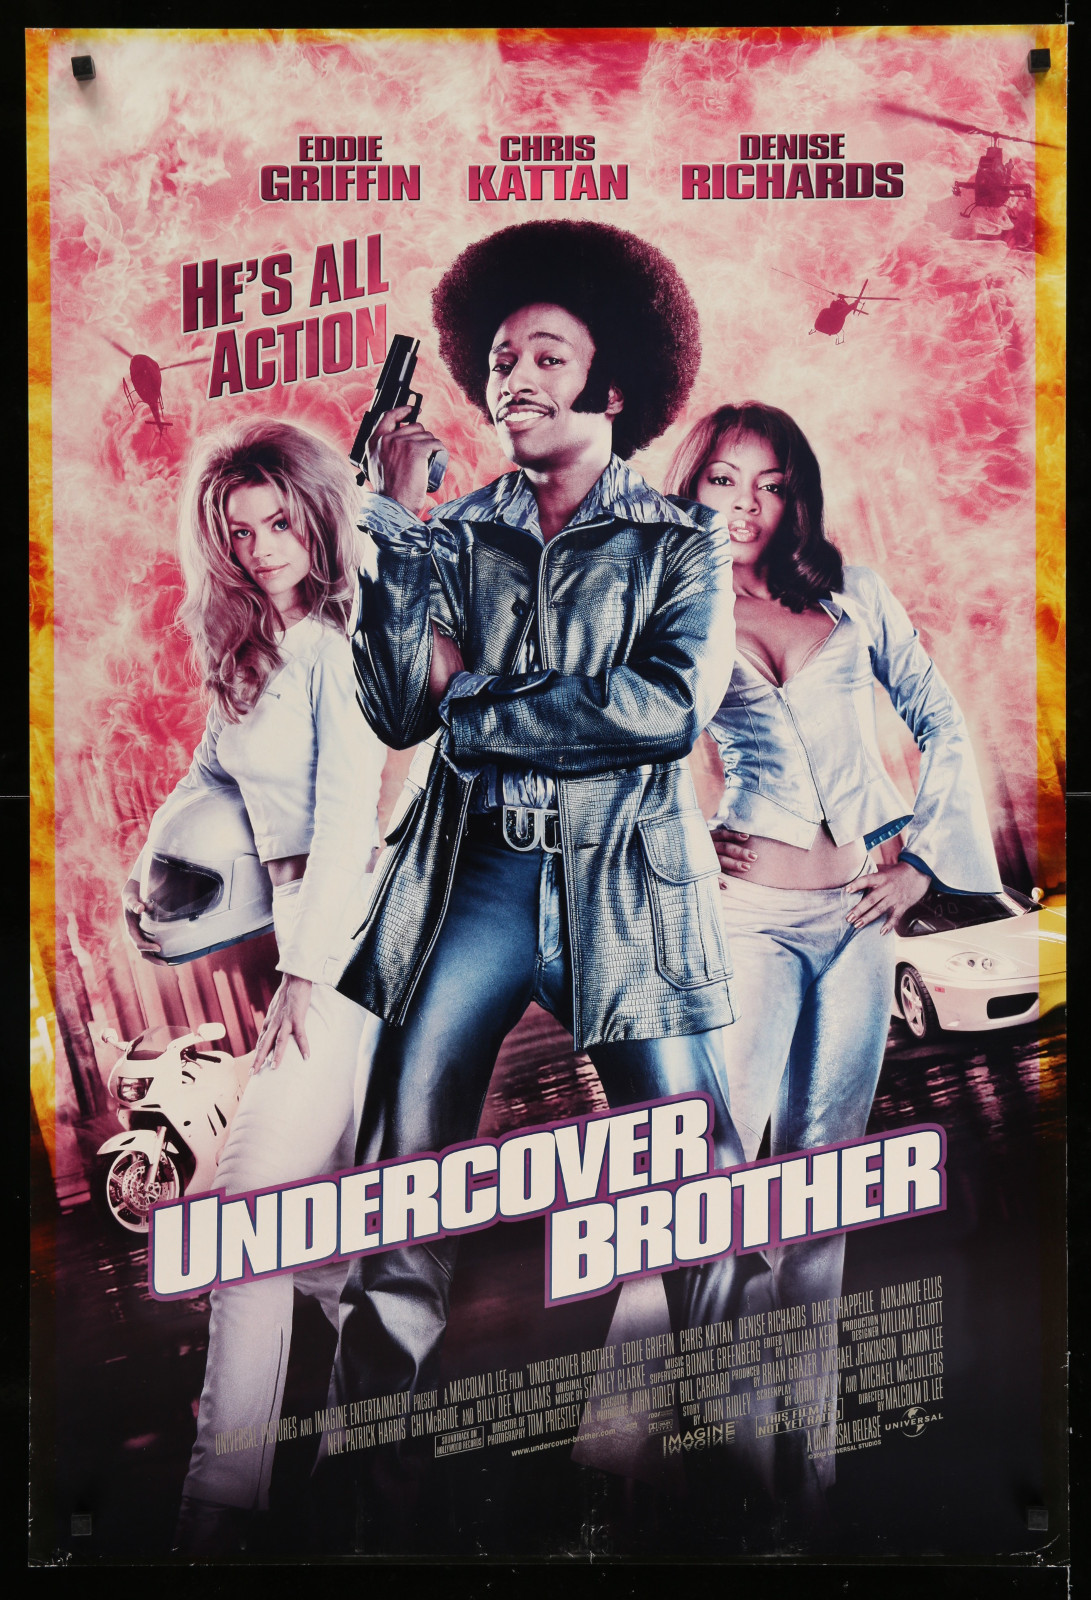 Undercover Brother 2A366 A Part Of A Lot 29 Unfolded Double-Sided 27X40 One-Sheets '90S-00S Great Movie Images!